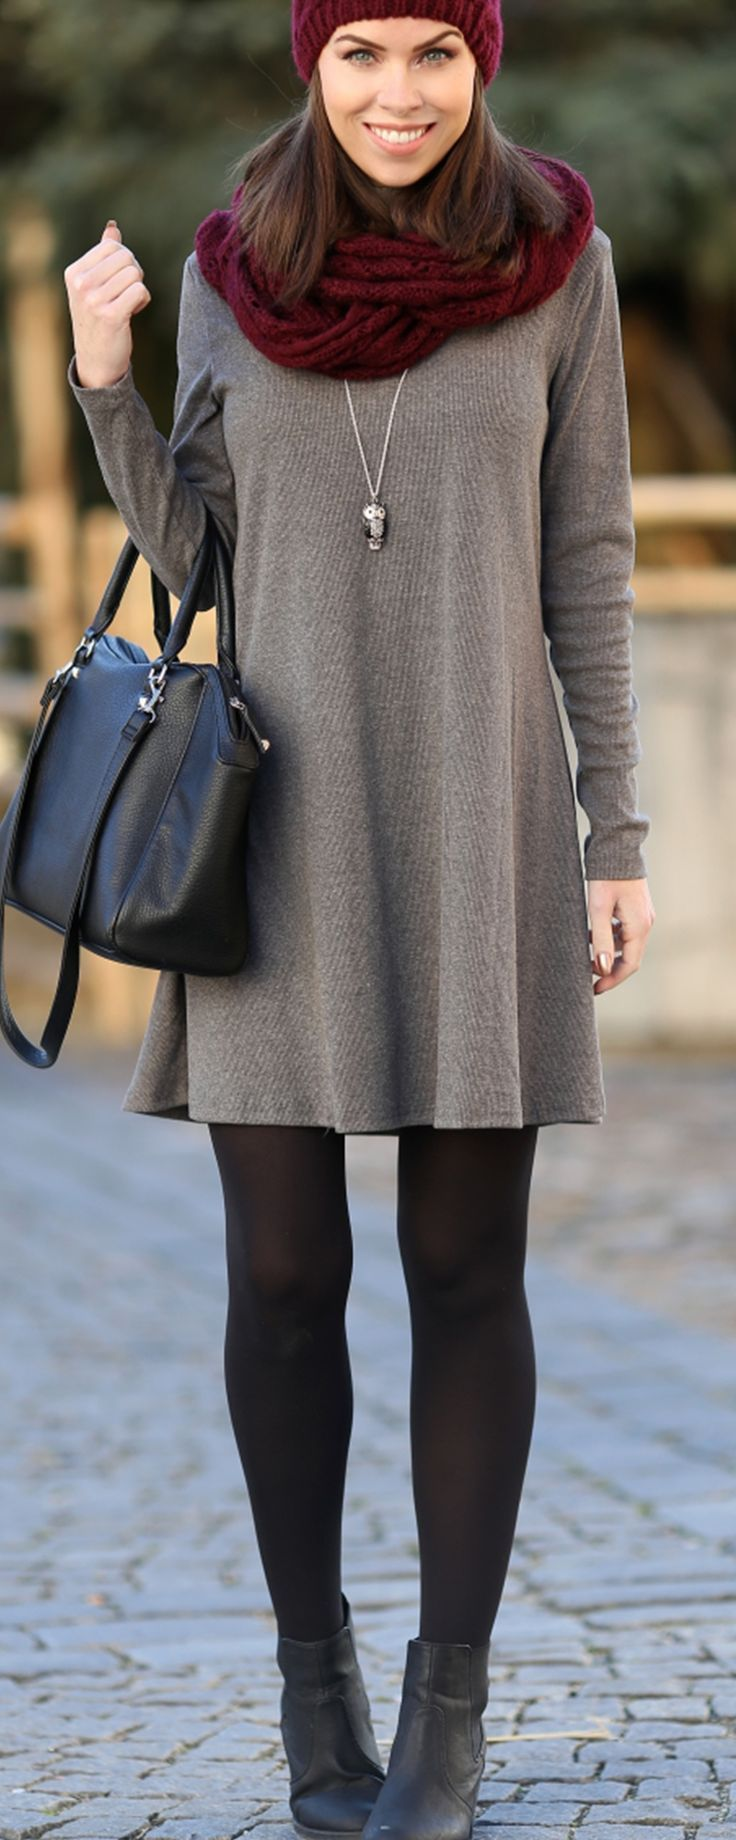 917a75a6edc A super basic and easy way to wear your casual high neck dress in the  winter   fall is to add a long cardigan